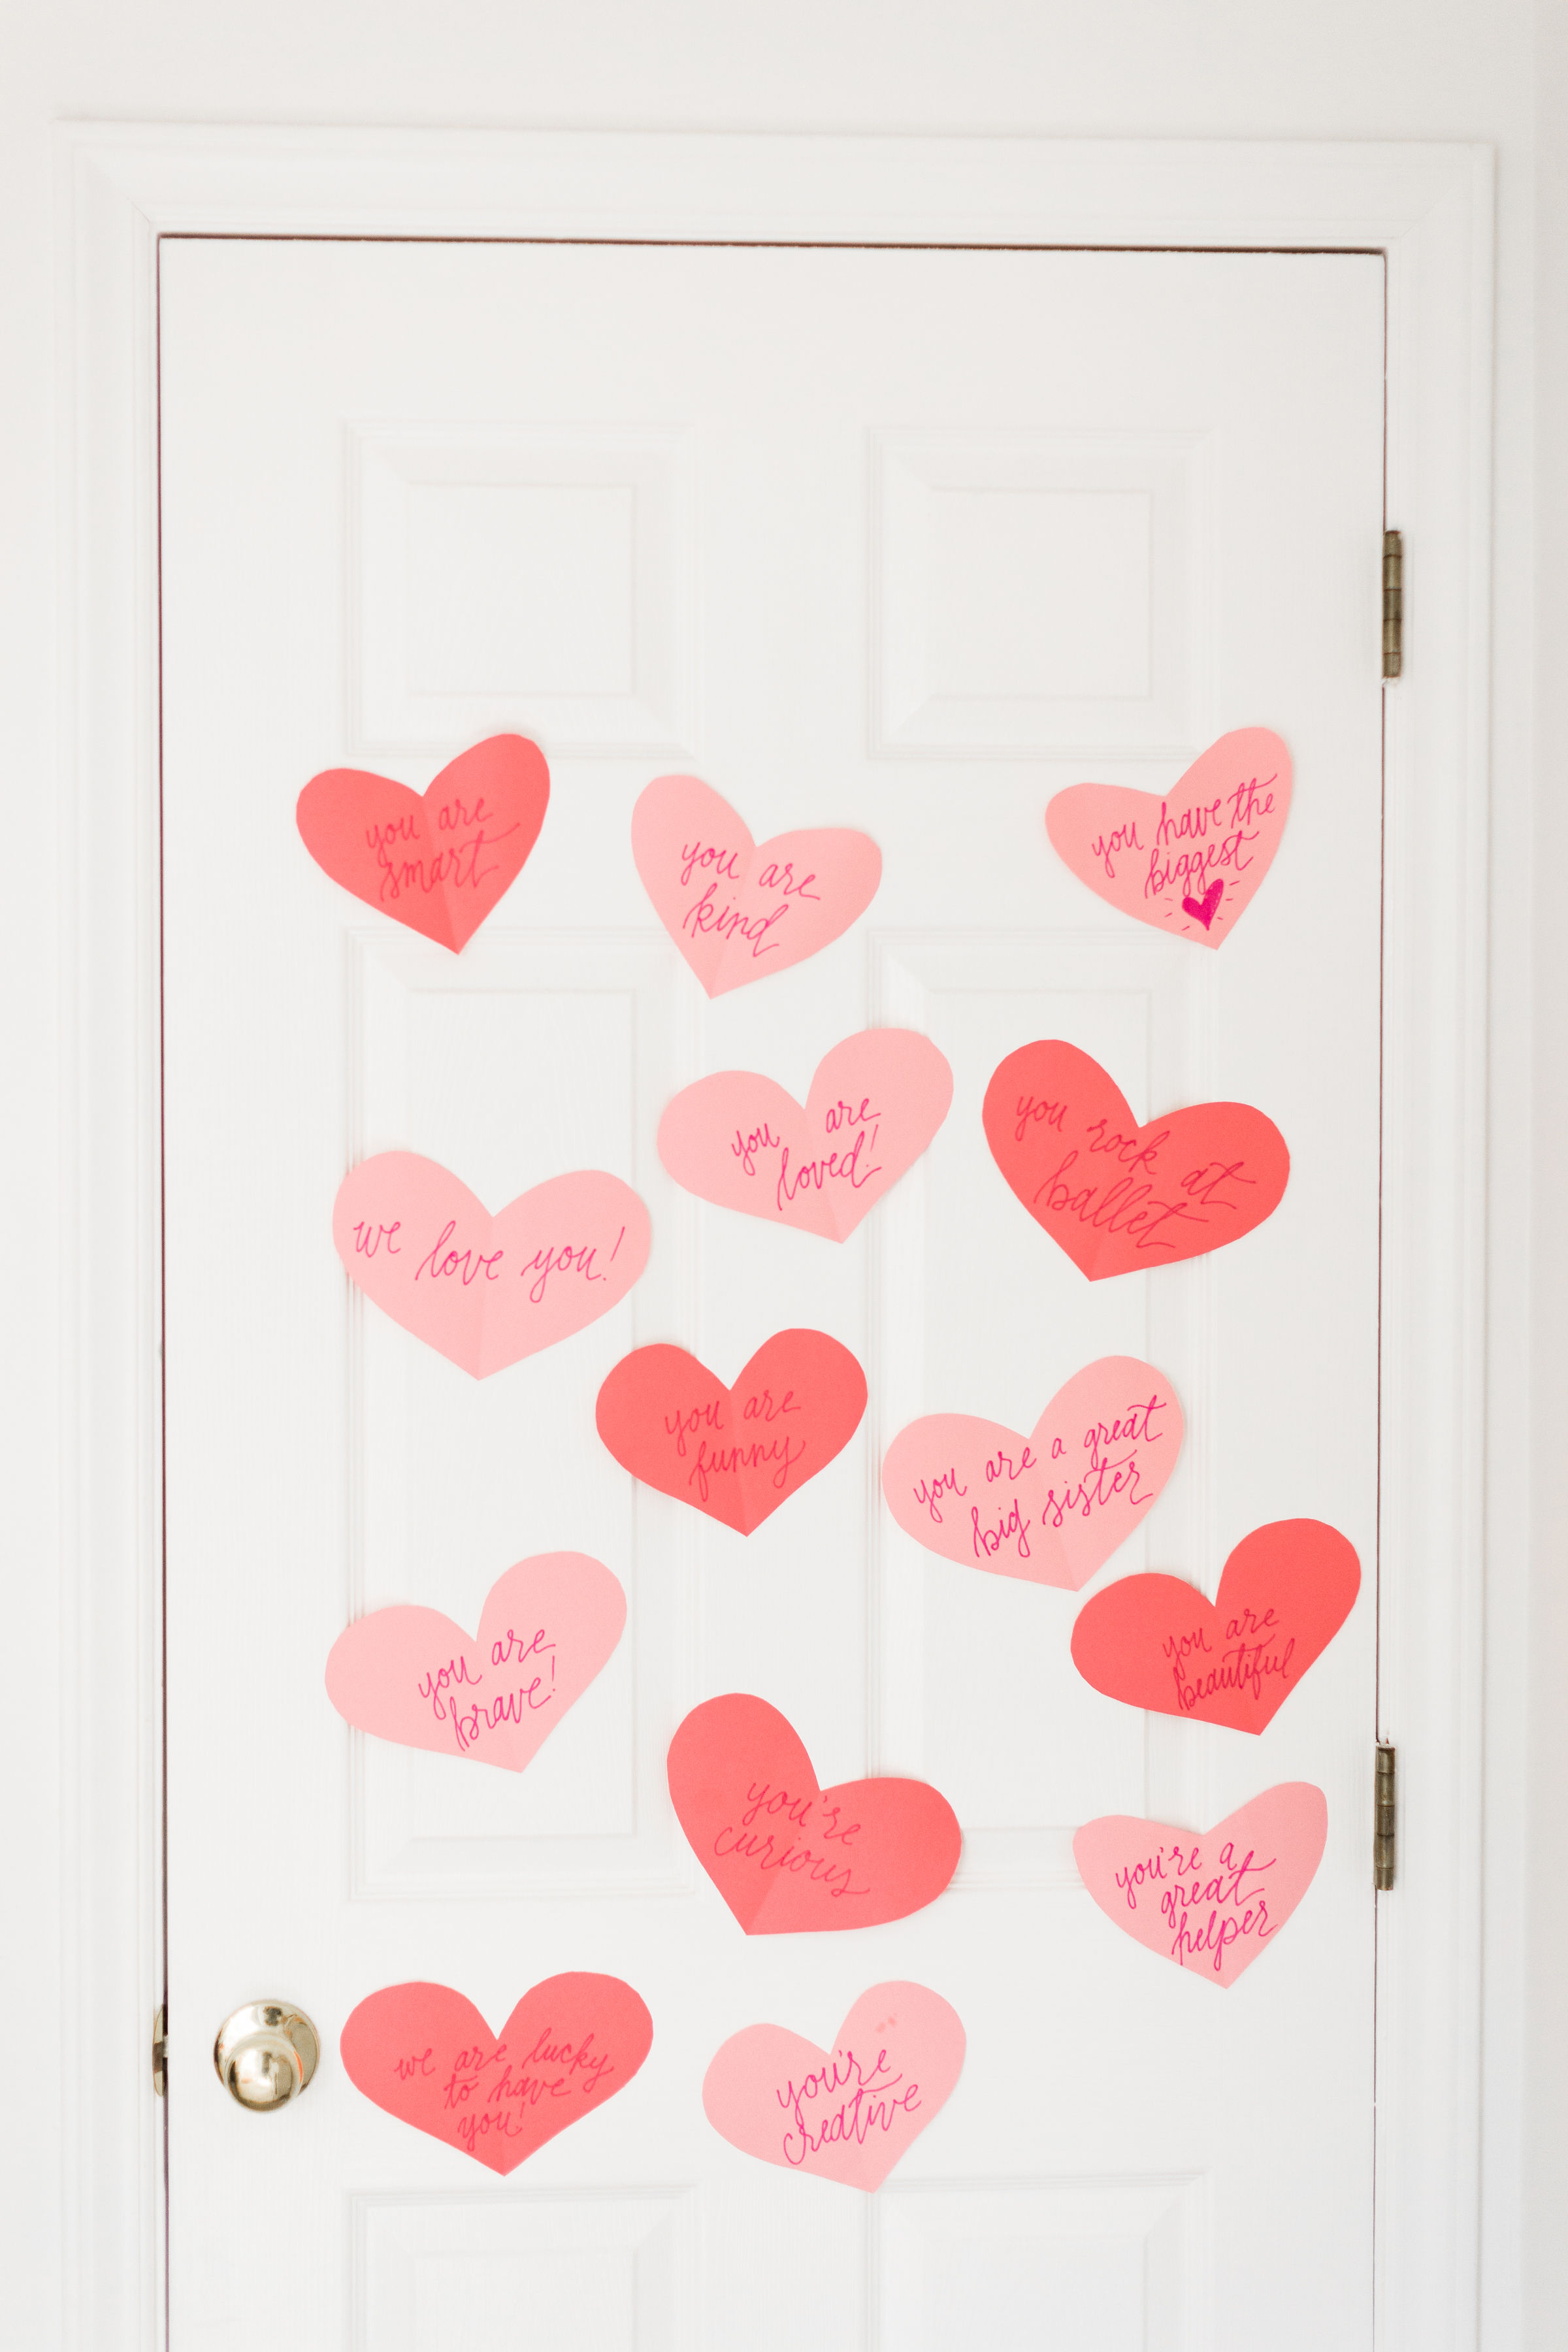 A DIY heart attack - paper hearts spelling out the reasons you love your Valentine - are sure to surprise and delight kids and grown-ups alike! | glitterinc.com | @glitterinc